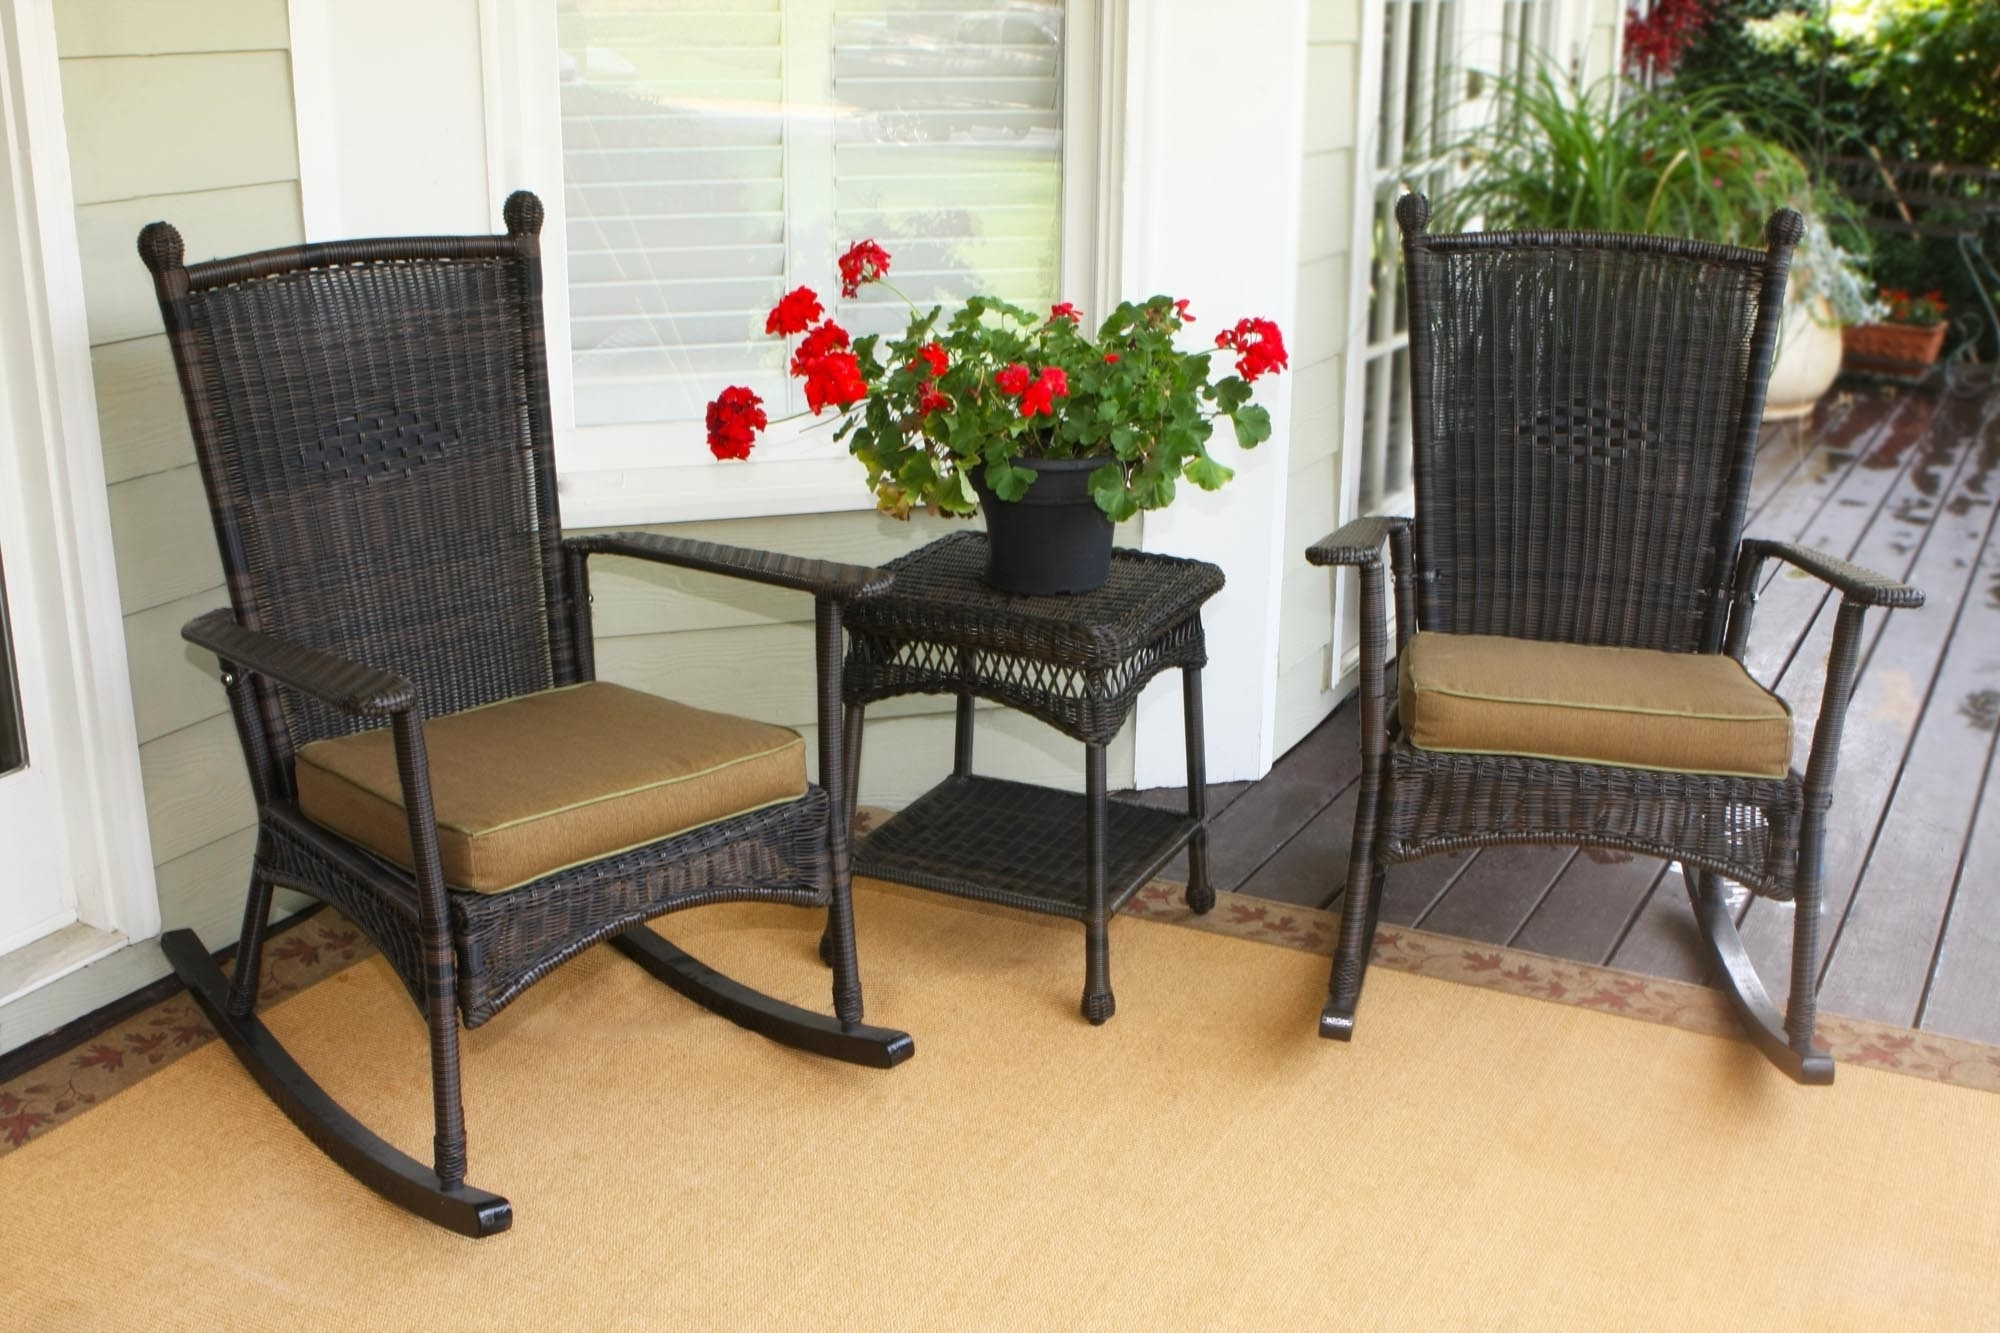 Portside Classic Wicker Rocking Chair Set – The Rocking Chair Company With Regard To Preferred Wicker Rocking Chairs With Cushions (View 12 of 15)